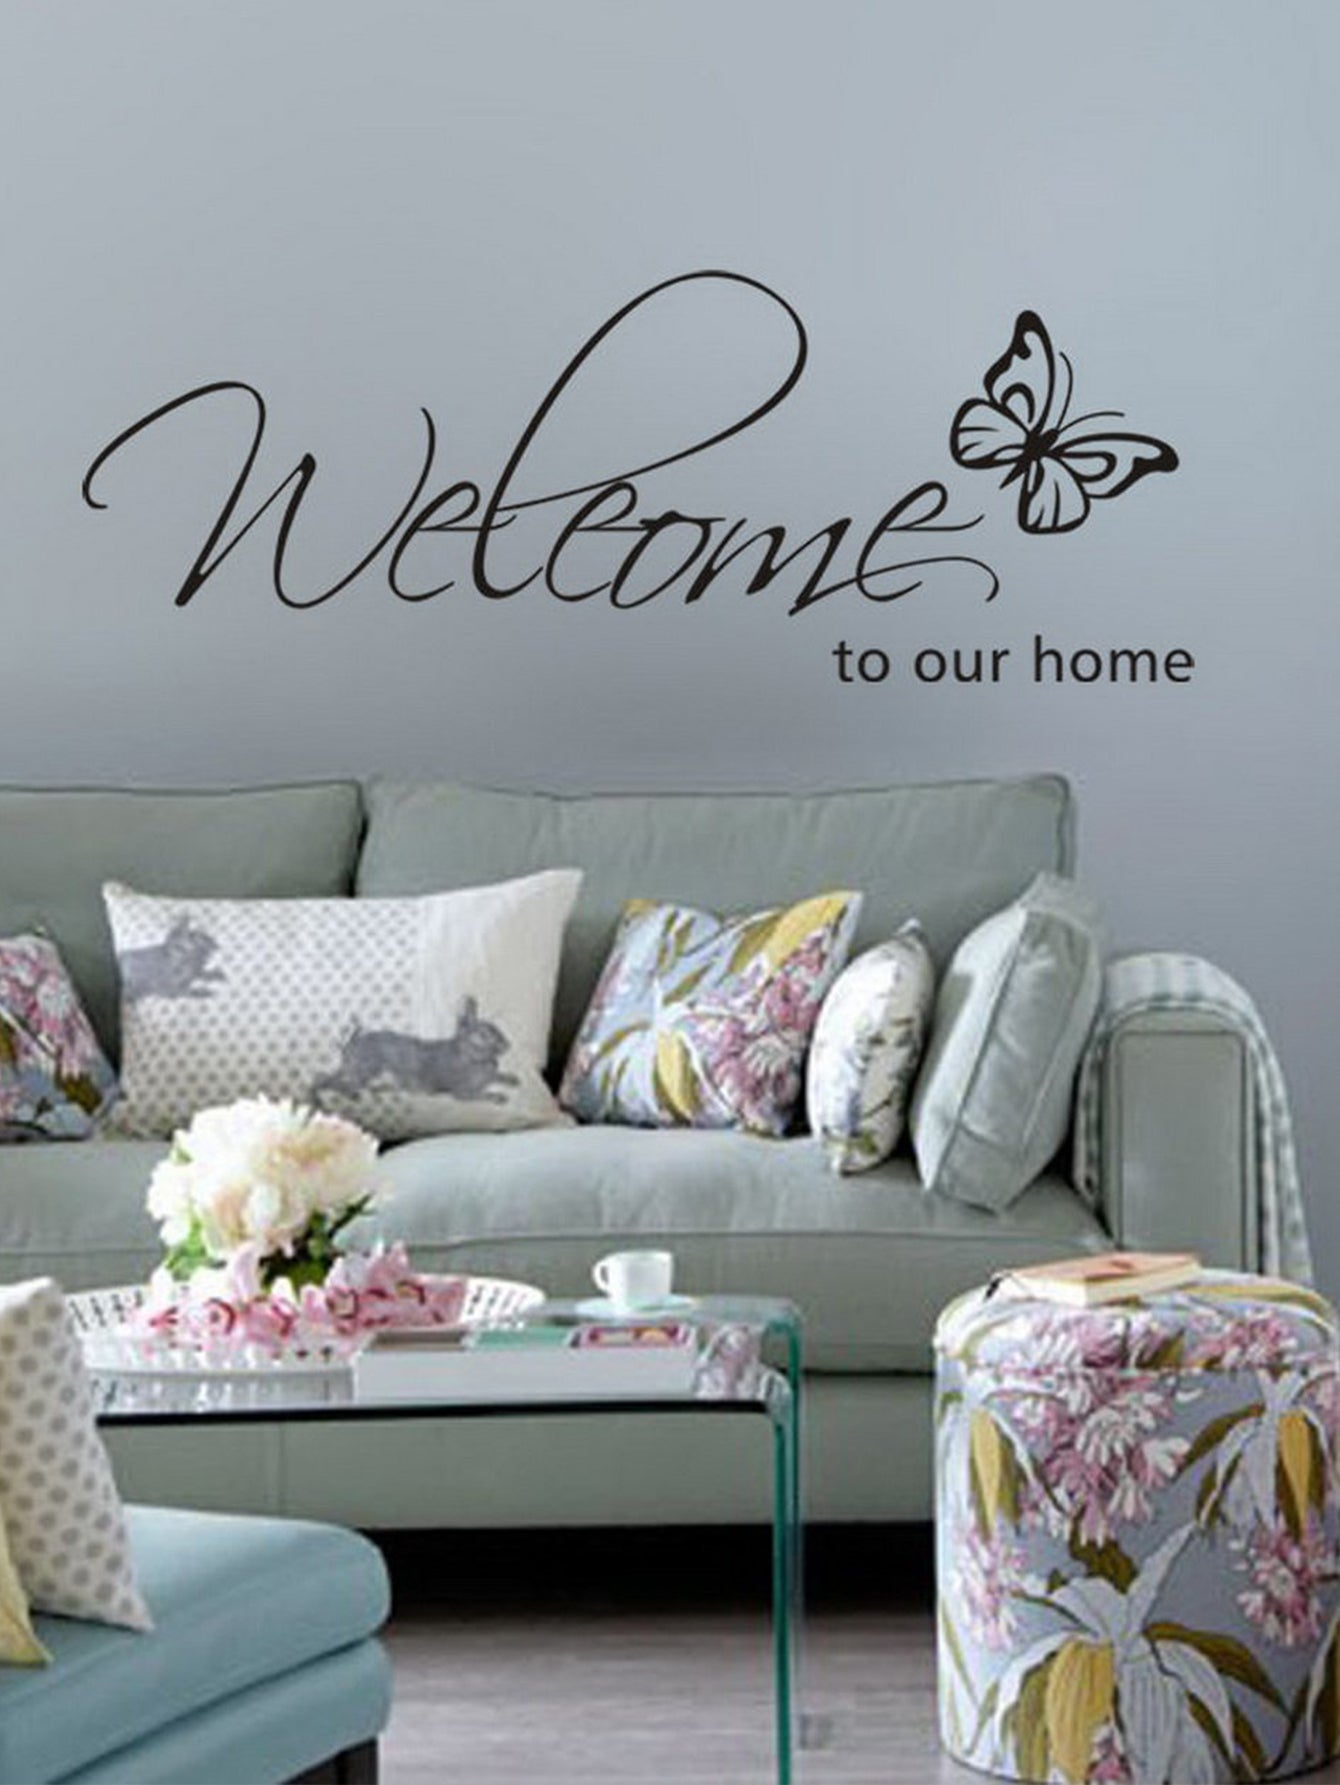 Sweet Home House Decorative Pillows Home Decor Accessories Welcome Home Wall Art Vases Artificial Flowers Storage Organization